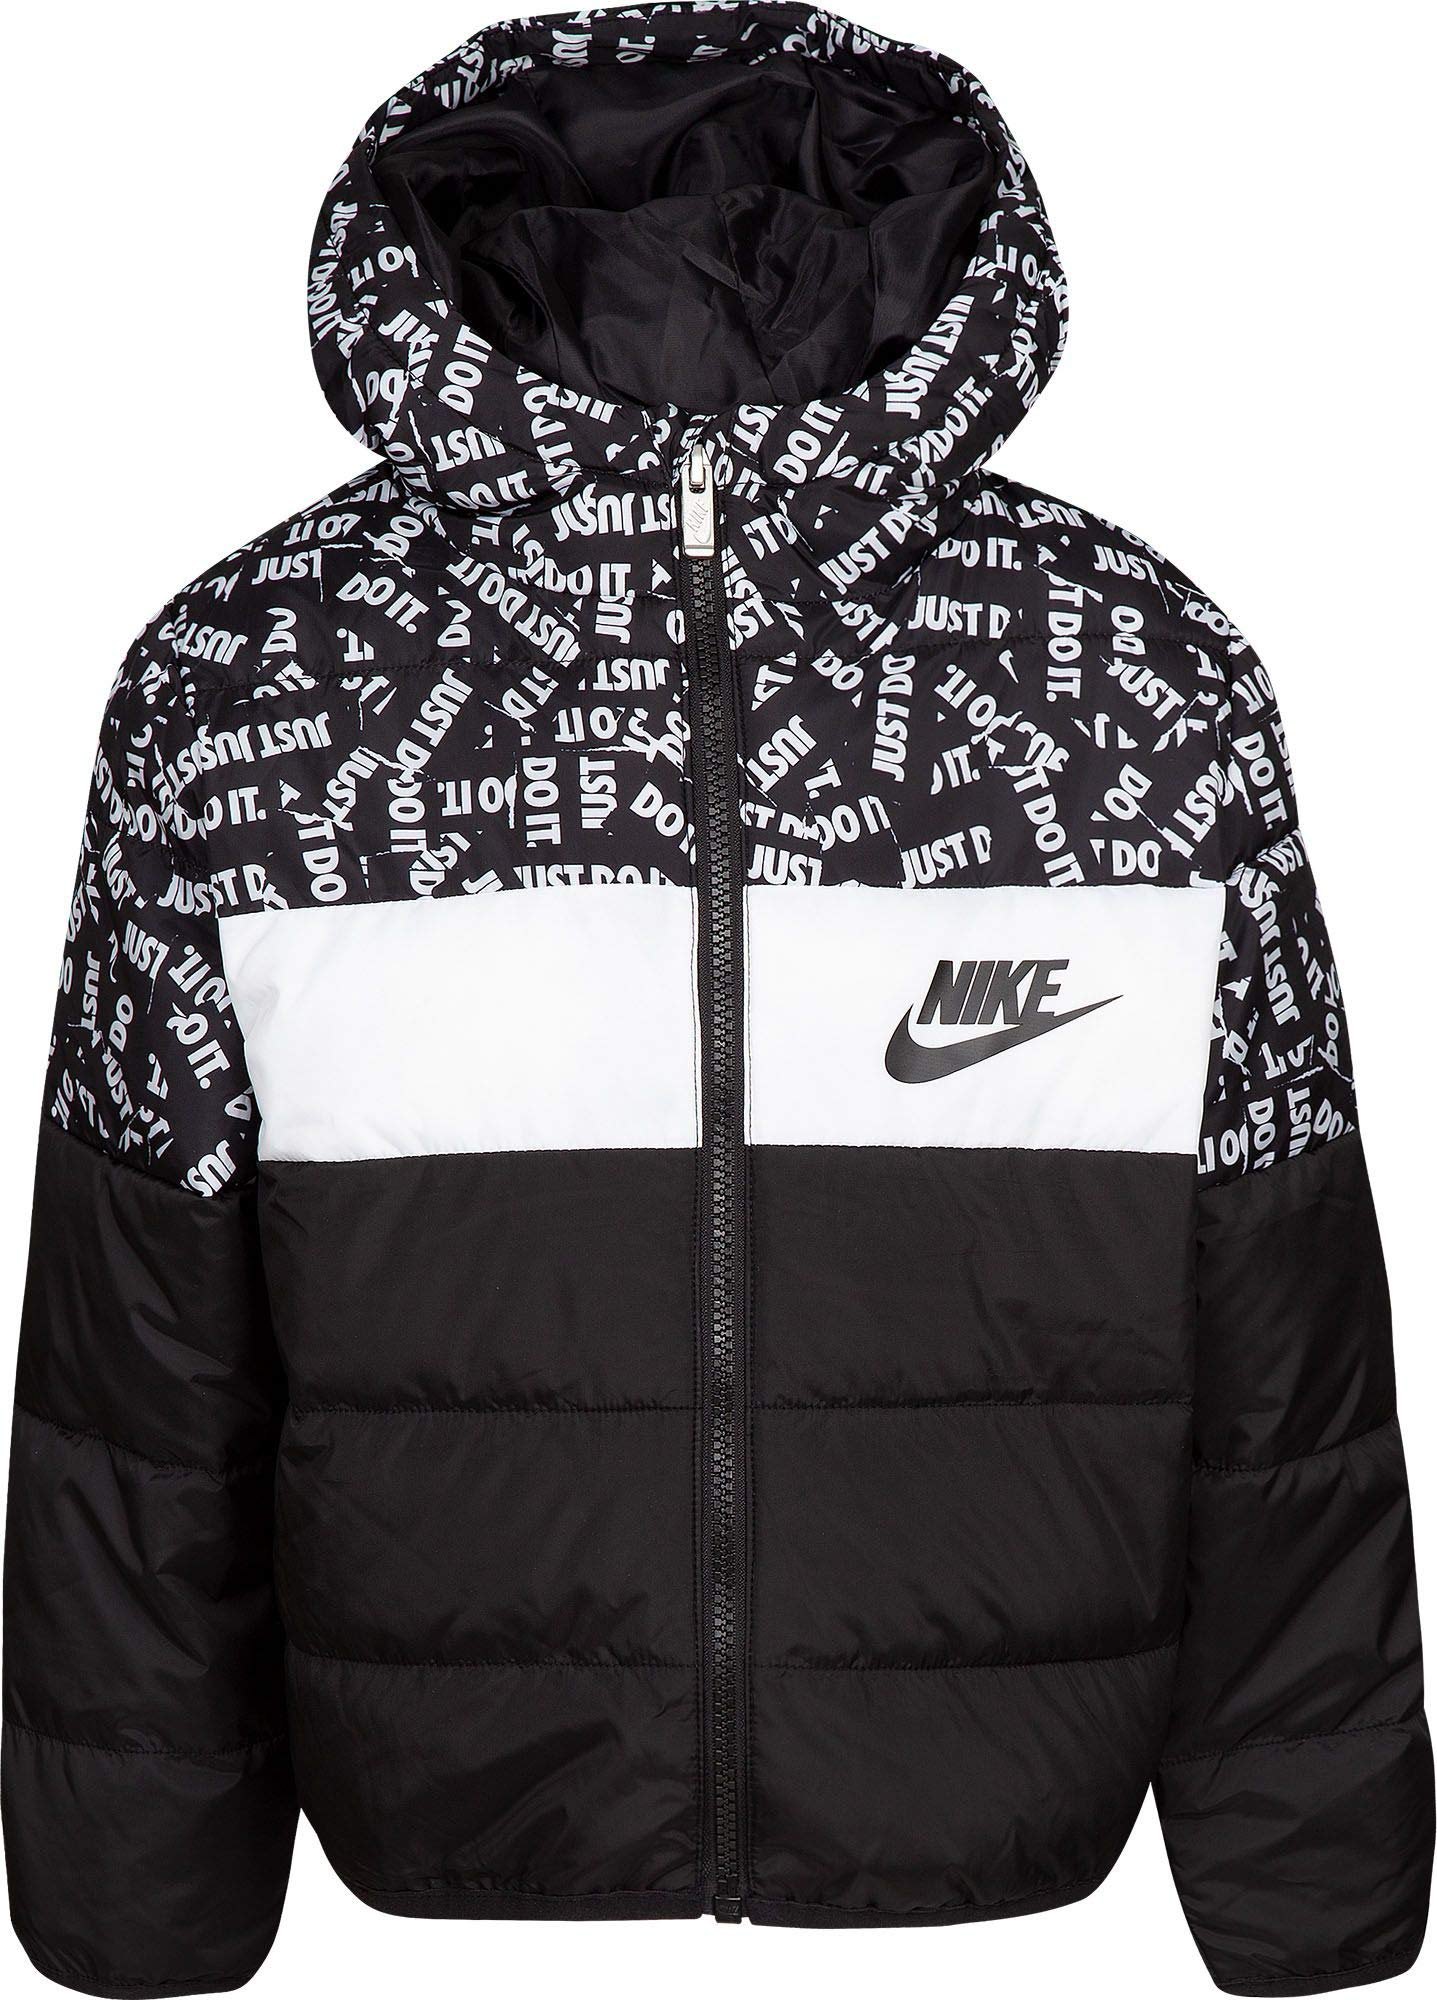 Nike Boy's Polyfill Blocked Insulated Puffer Jacket (Black, 4) by Nike (Image #1)